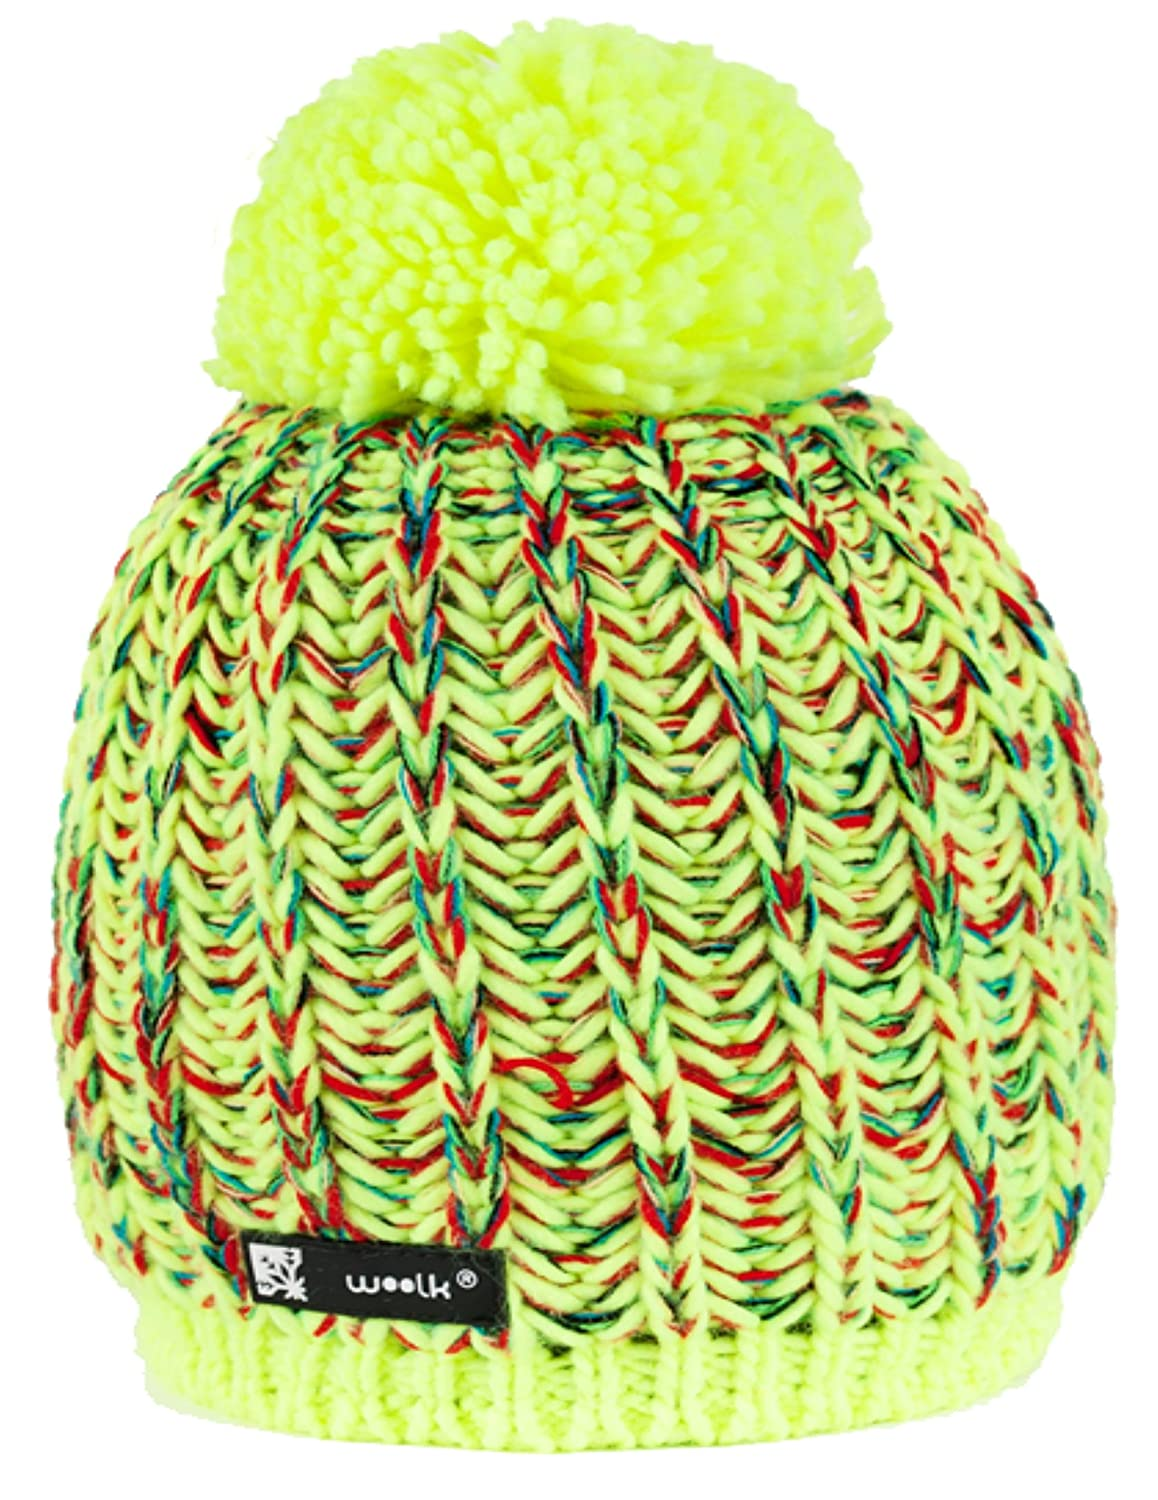 Beanie Hat WOOLLY Knitted Cookies Eskimo Style Wool with Ponpon Men's Women's Winter Warm SKI Snowboard Hats 02